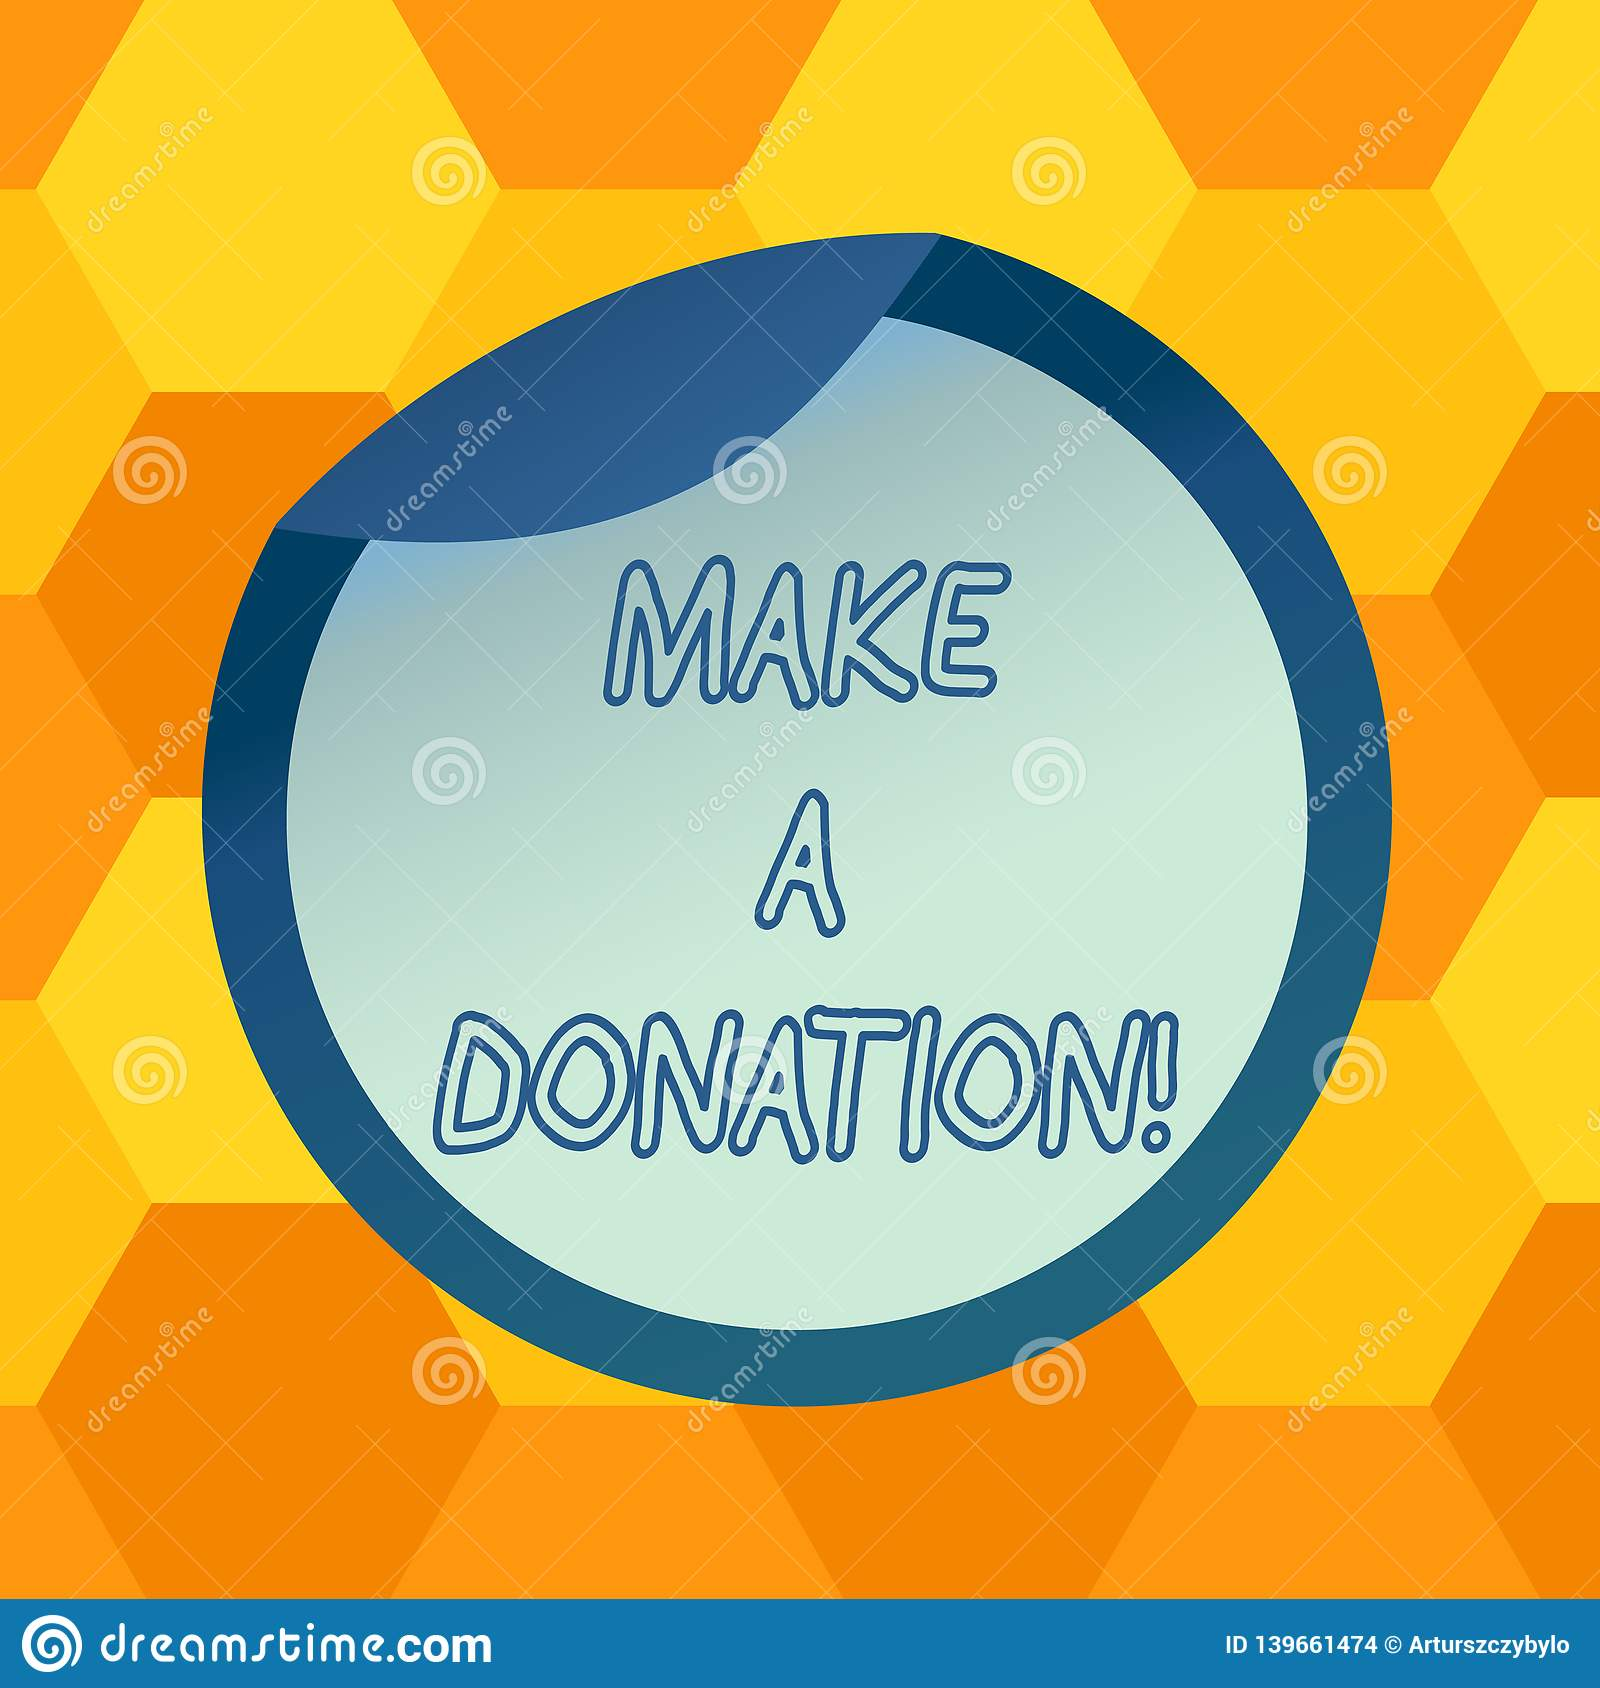 Handwriting Text Make A Donation Concept Meaning Donate Giving Things Not Used Any More To Needed Showing Bottle Stock Illustration Illustration Of Contribute Donations 139661474